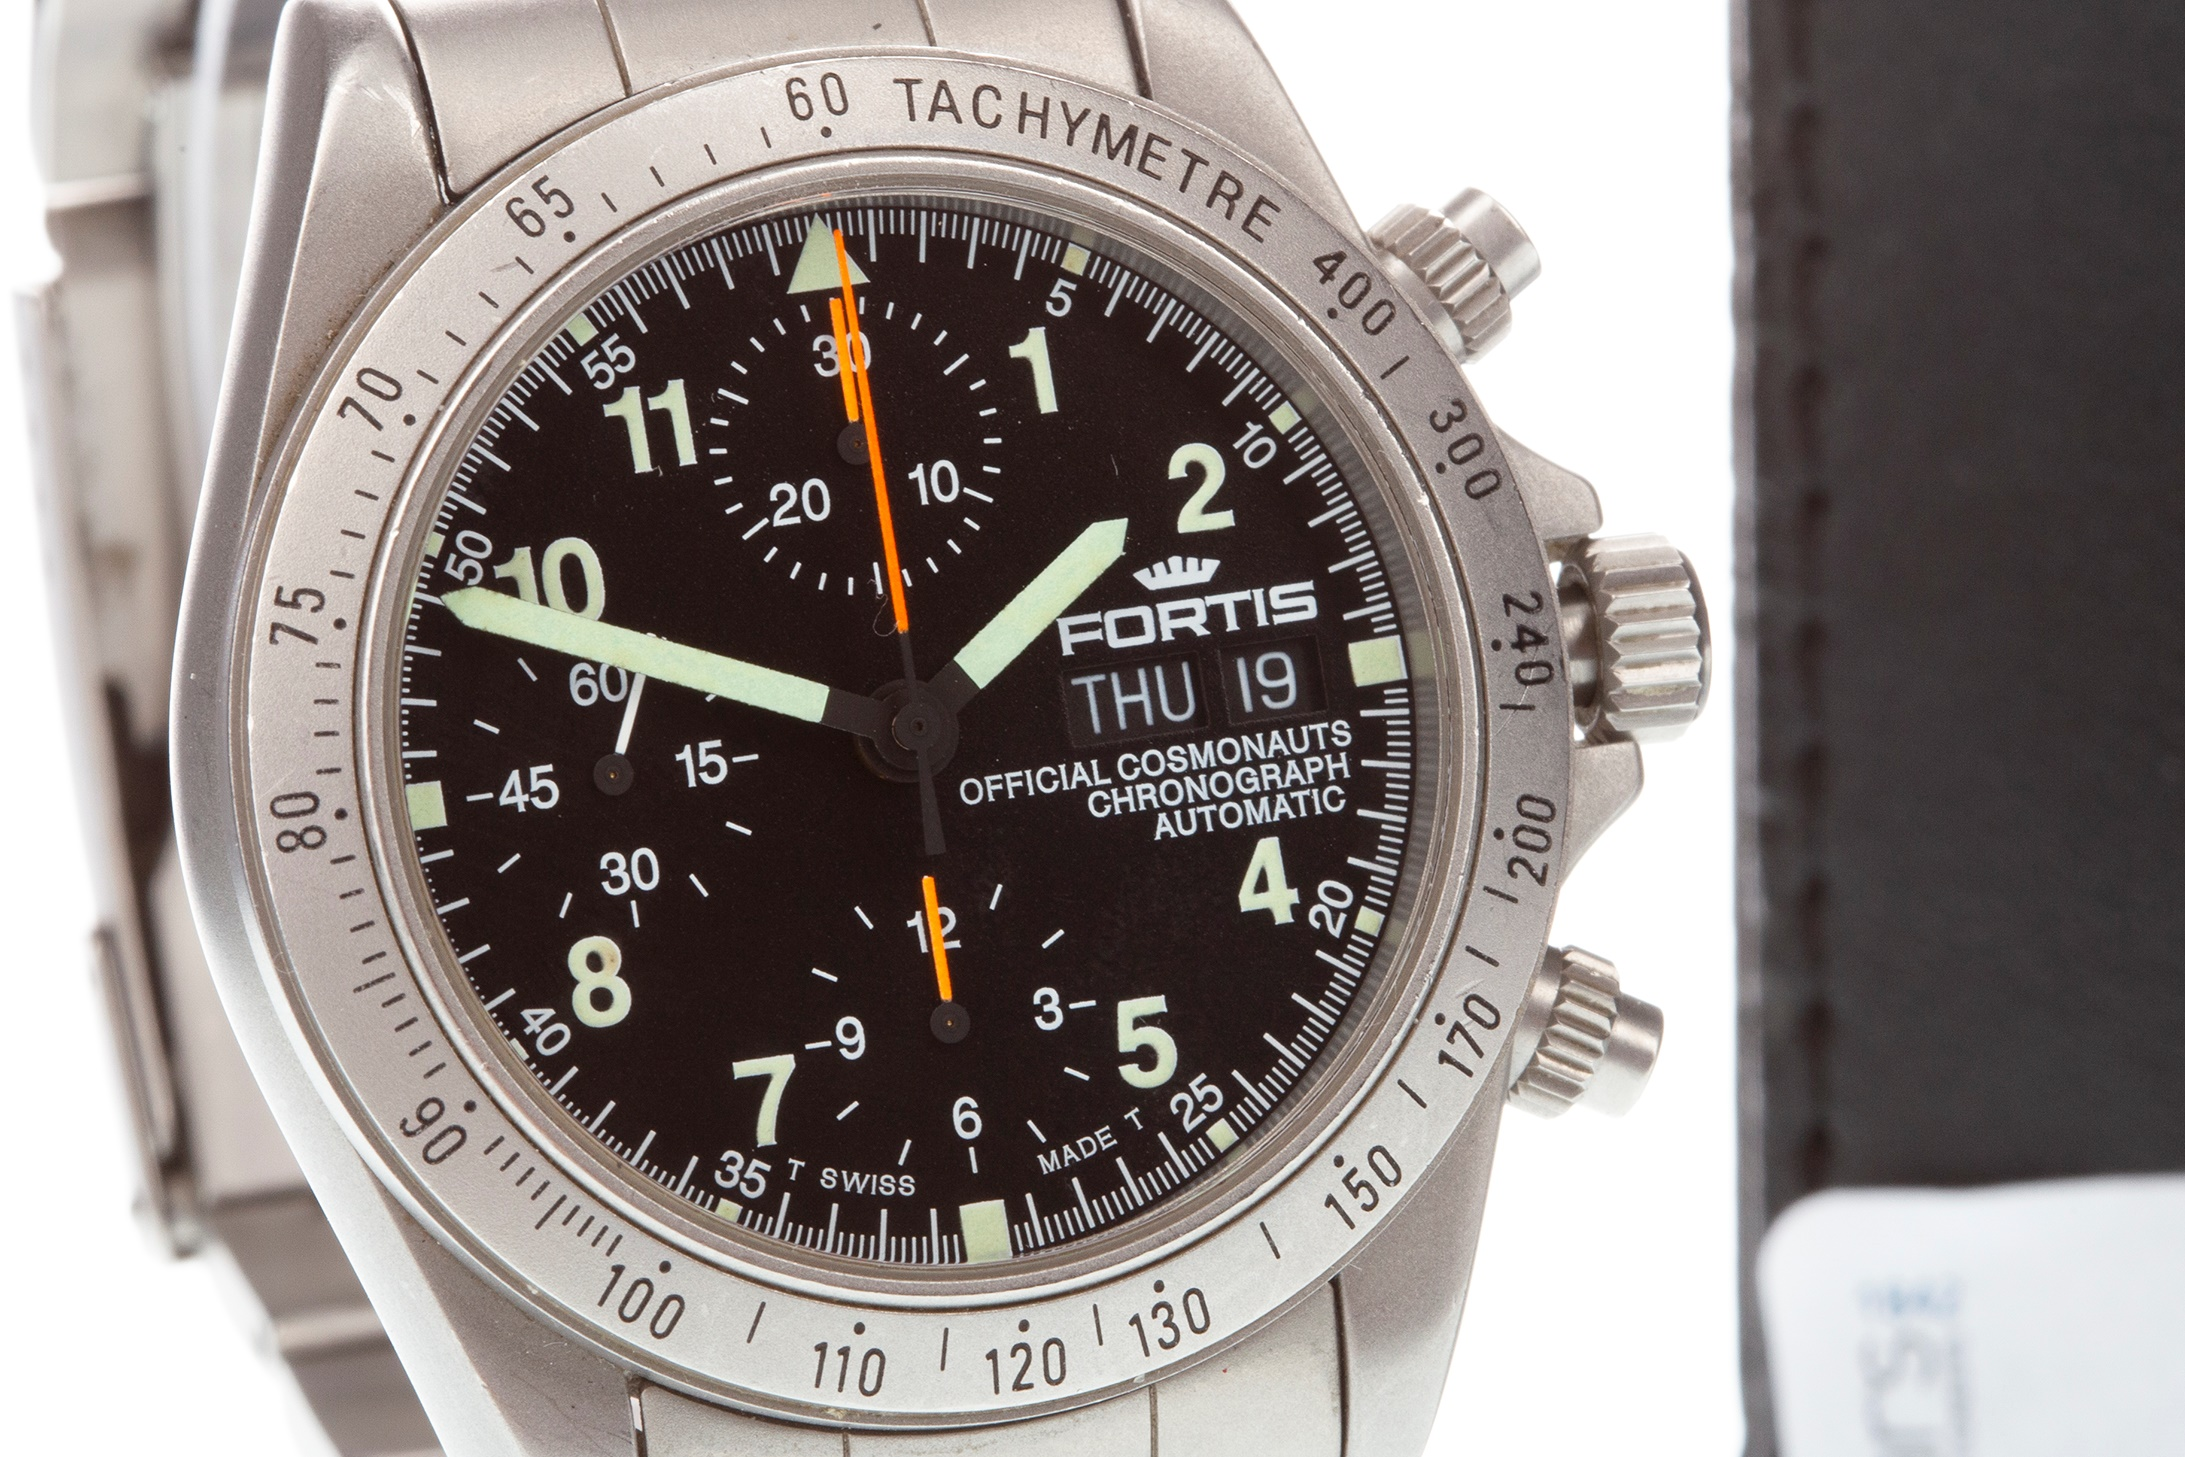 Lot 718 - A GENTLEMAN'S FORTIS STAINLESS STEEL WATCH